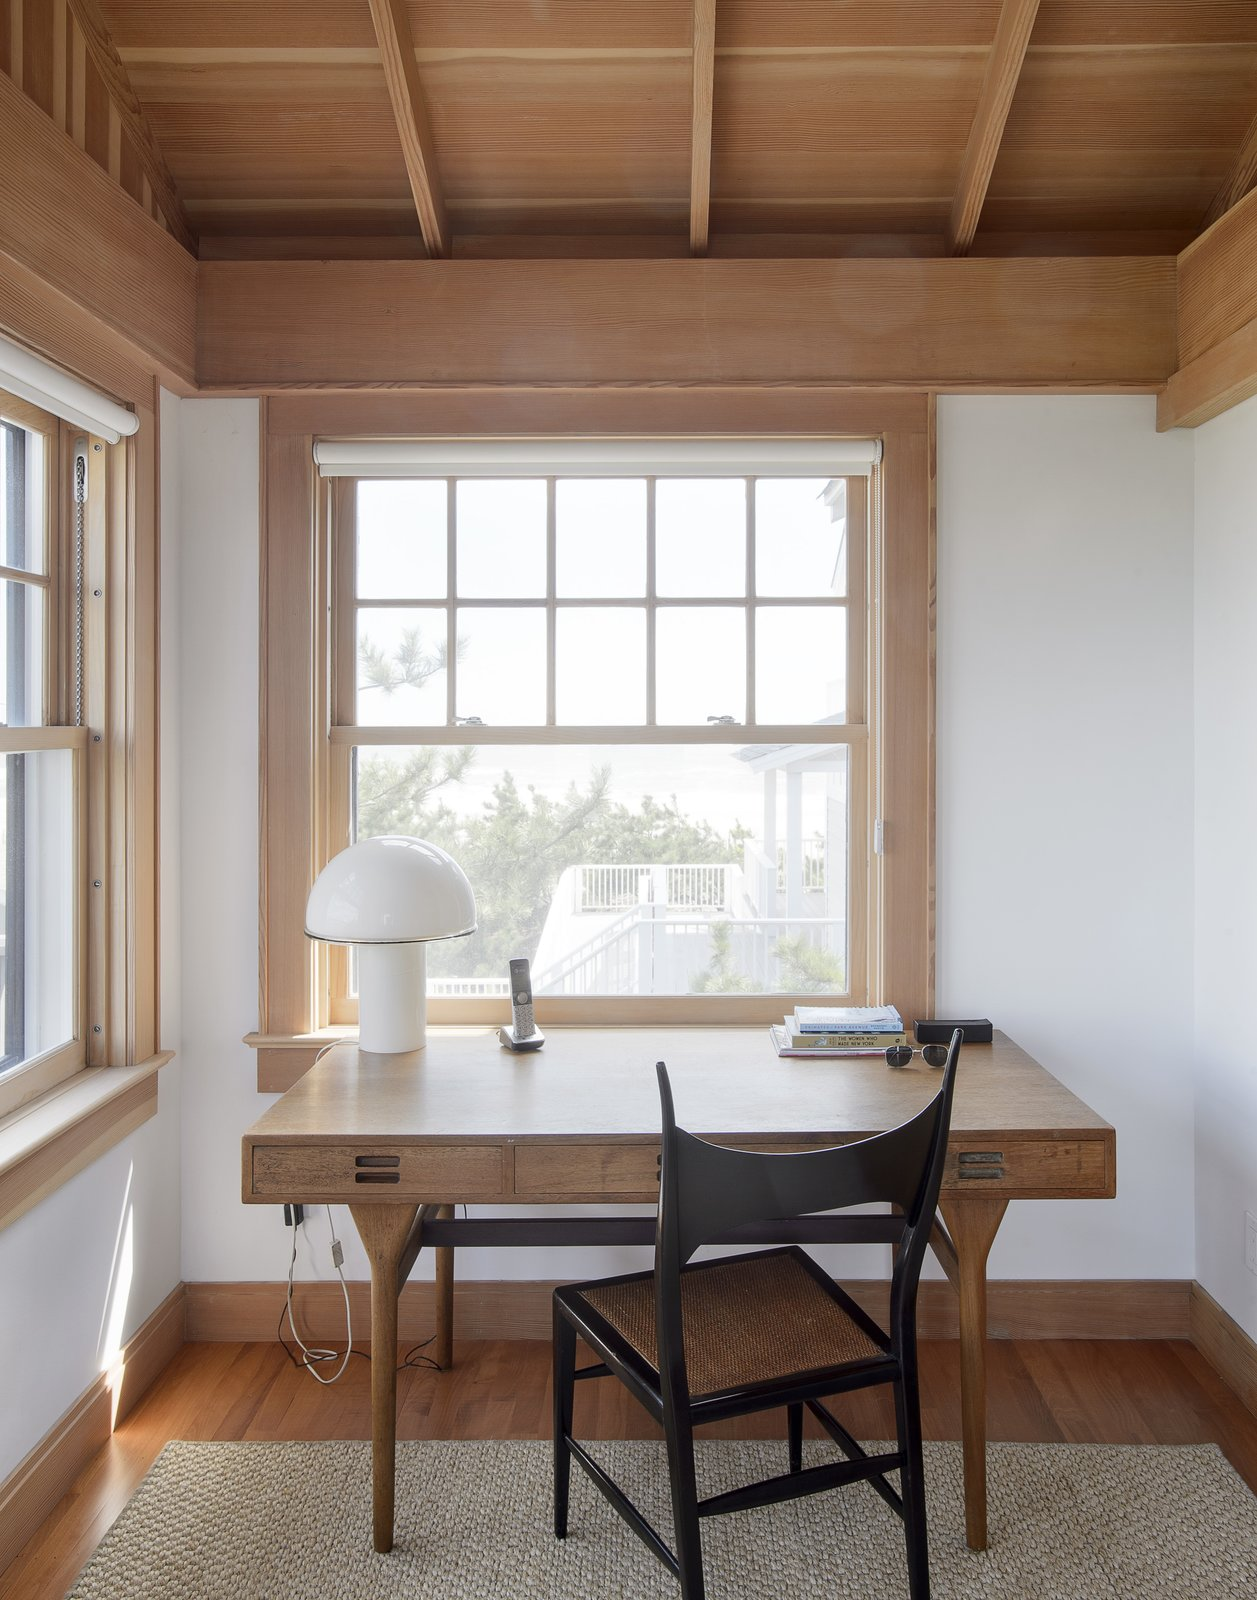 Office, Medium Hardwood Floor, Rug Floor, Lamps, Chair, and Desk  Best Photos from This Eclectic Beach Bungalow on Fire Island Was Saved After Sandy